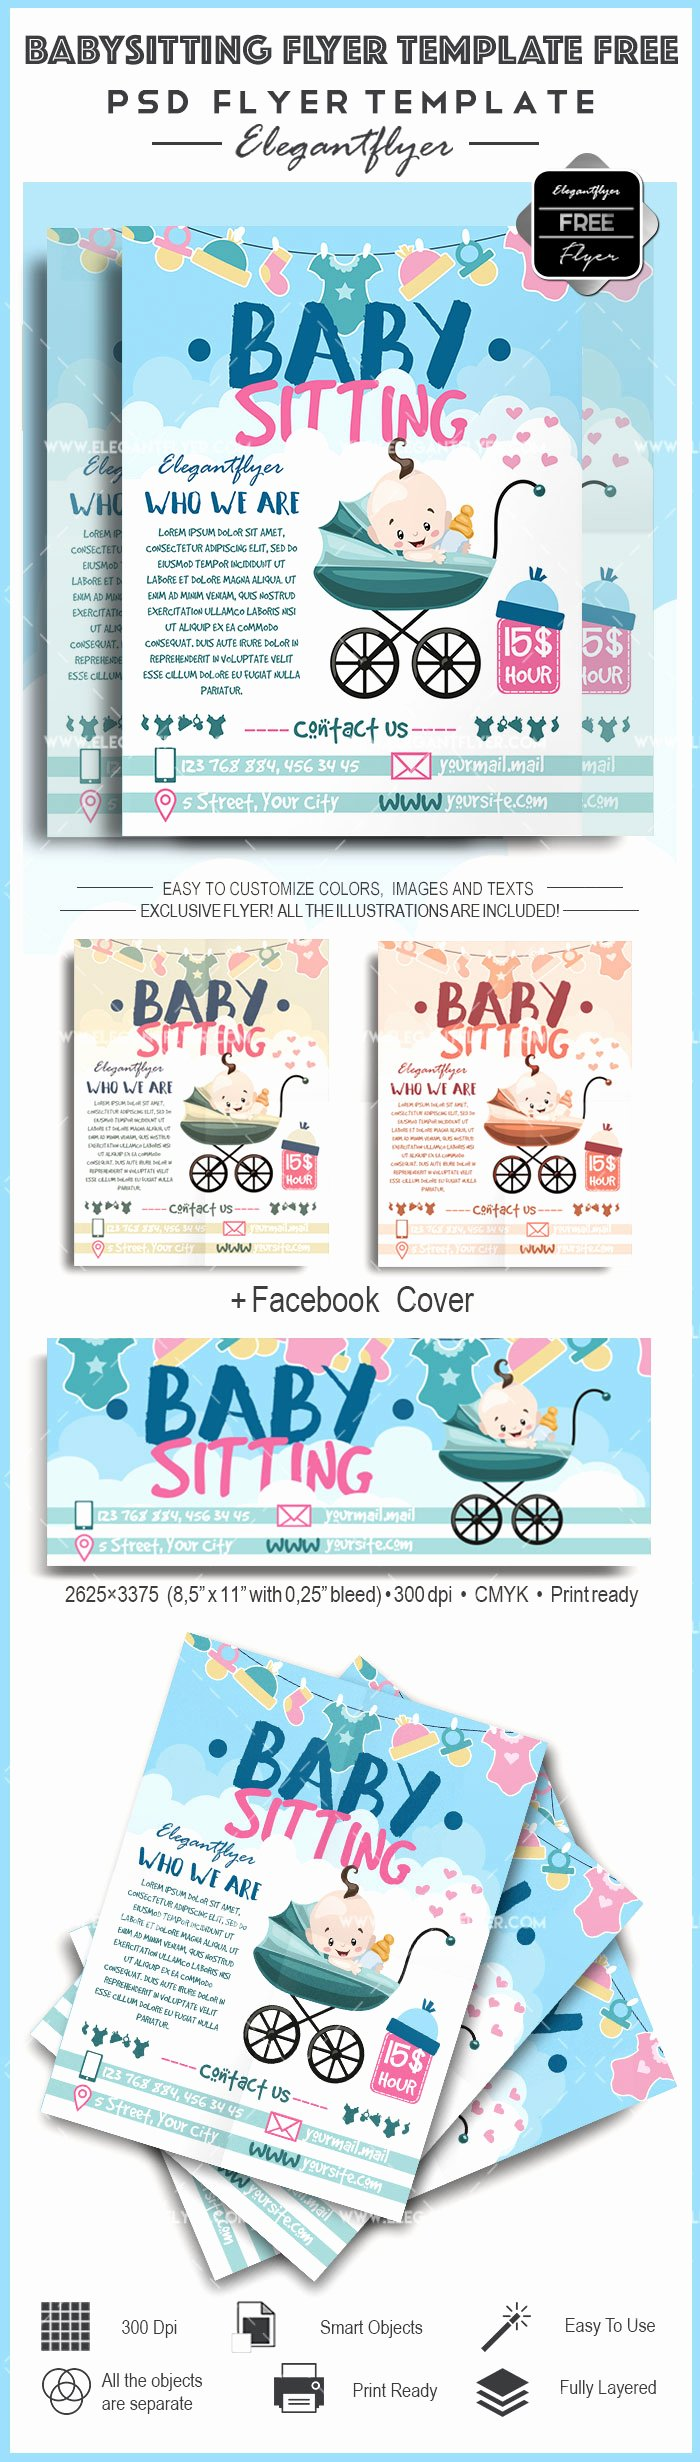 Free Babysitting Flyer Template Awesome Free Babysitting Psd Template – by Elegantflyer